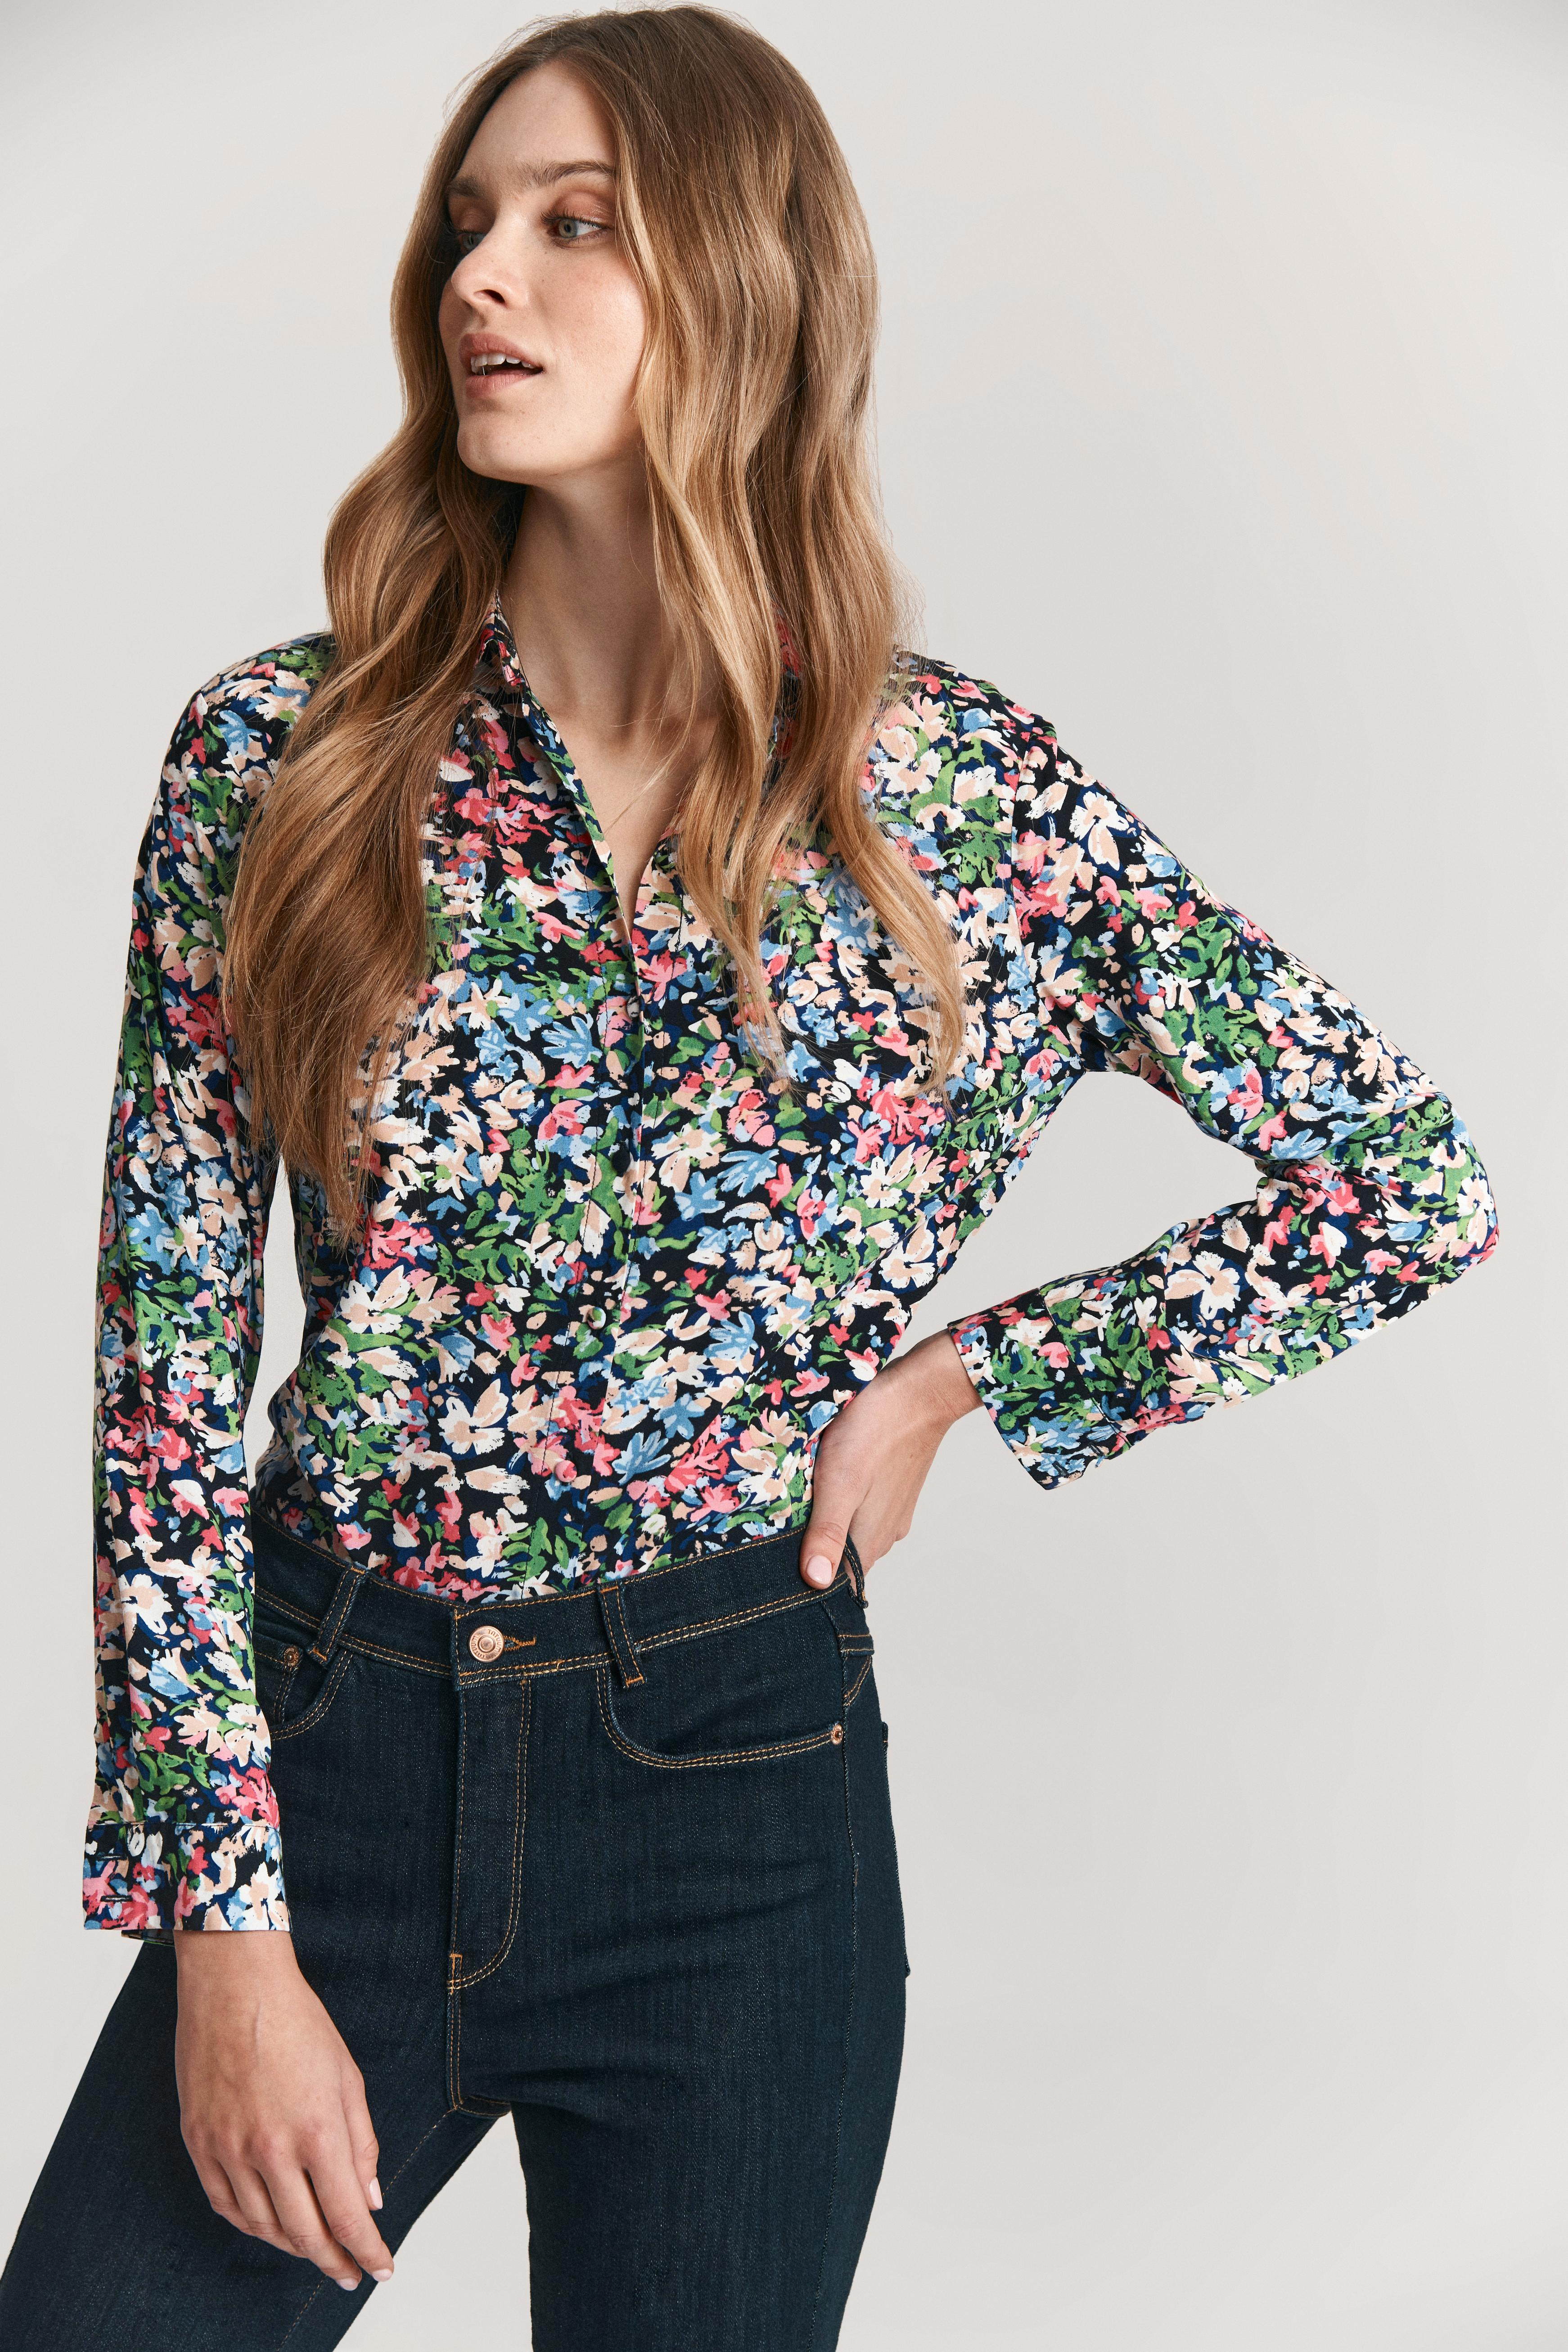 LADIES' FLORAL SHIRT GONIKA 1